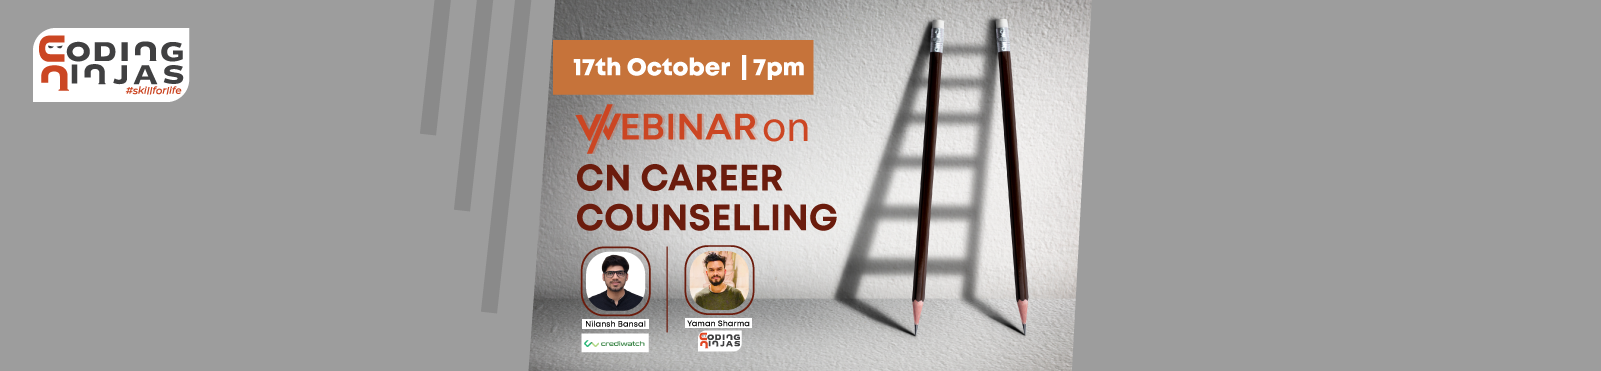 CN Career Counselling Webinar by Alumnus, BVP